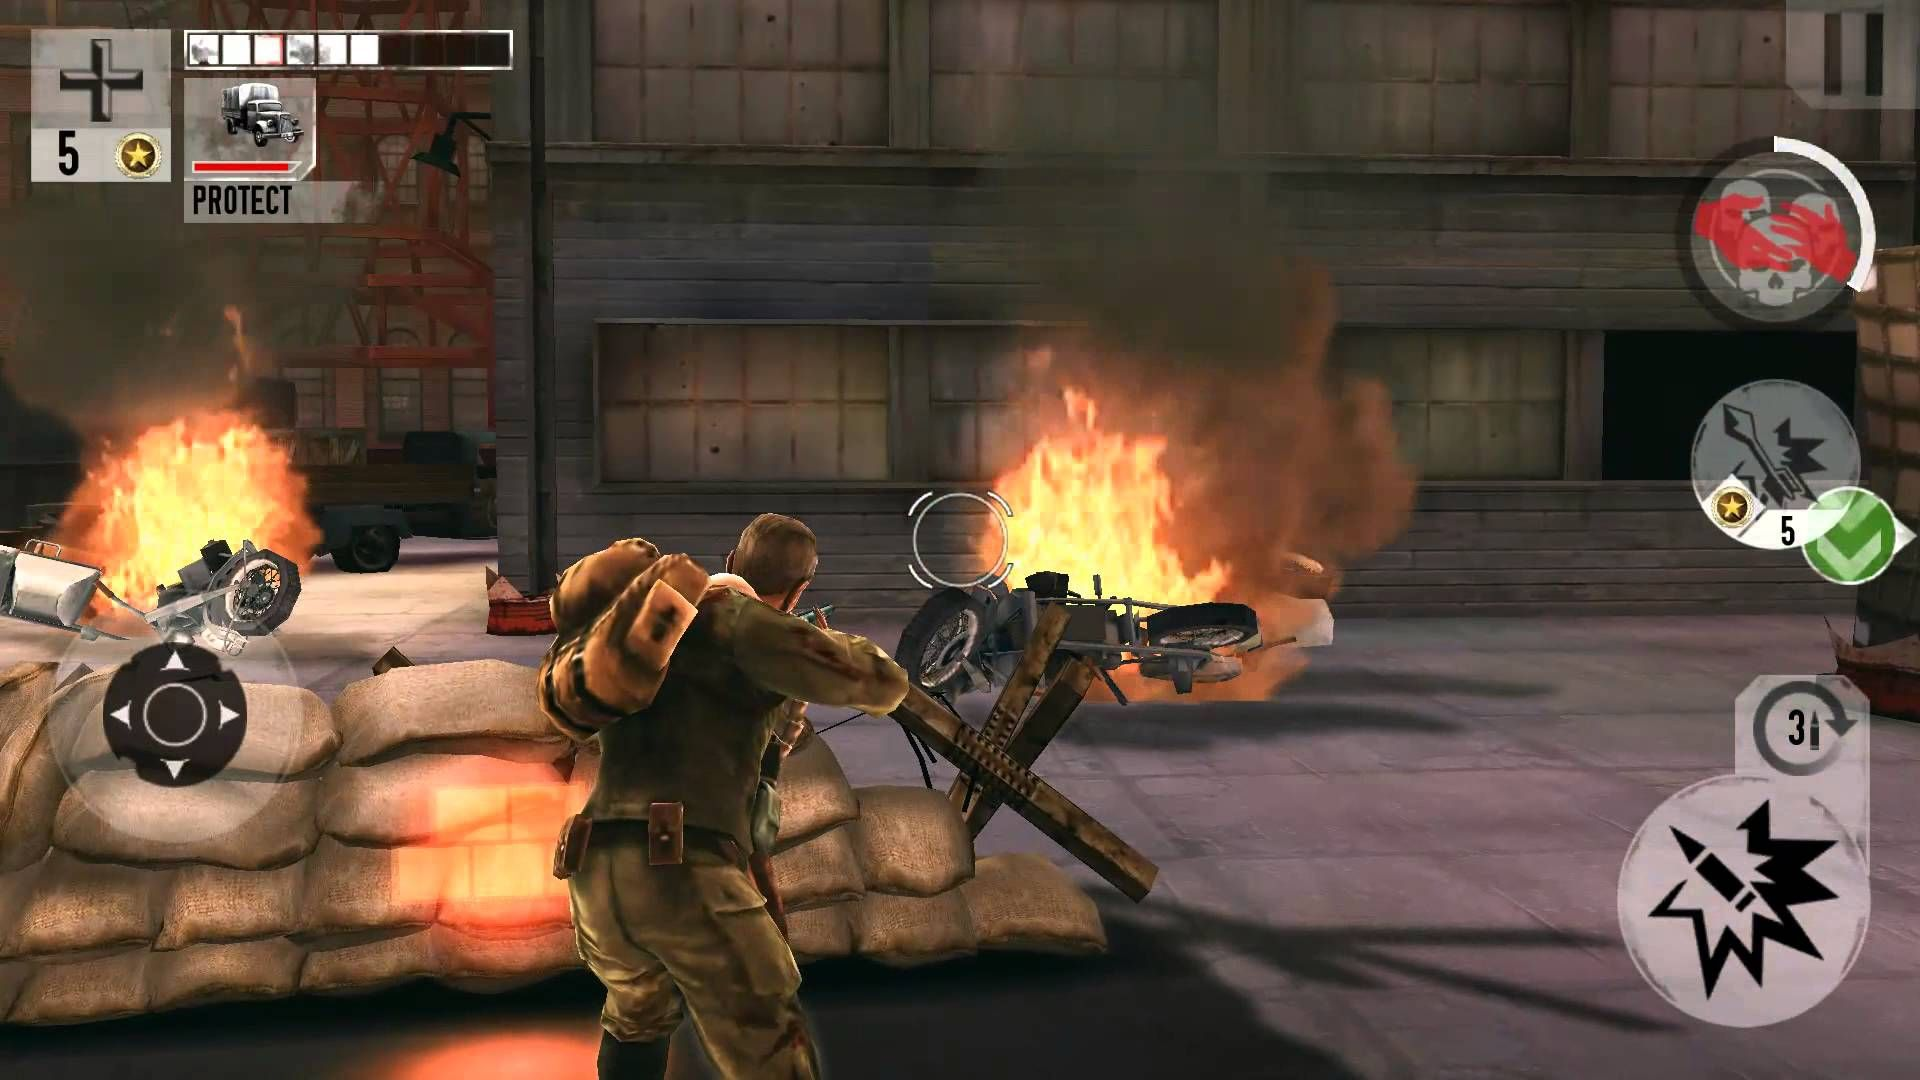 Brothers in Arms 3 Hack/Cheats - How to Get Free Medals, Dog Tags, Valor  Points and Blueprints(iOS/Android) Brothe… | Brothers in arms, Game  resources, Tool hacks